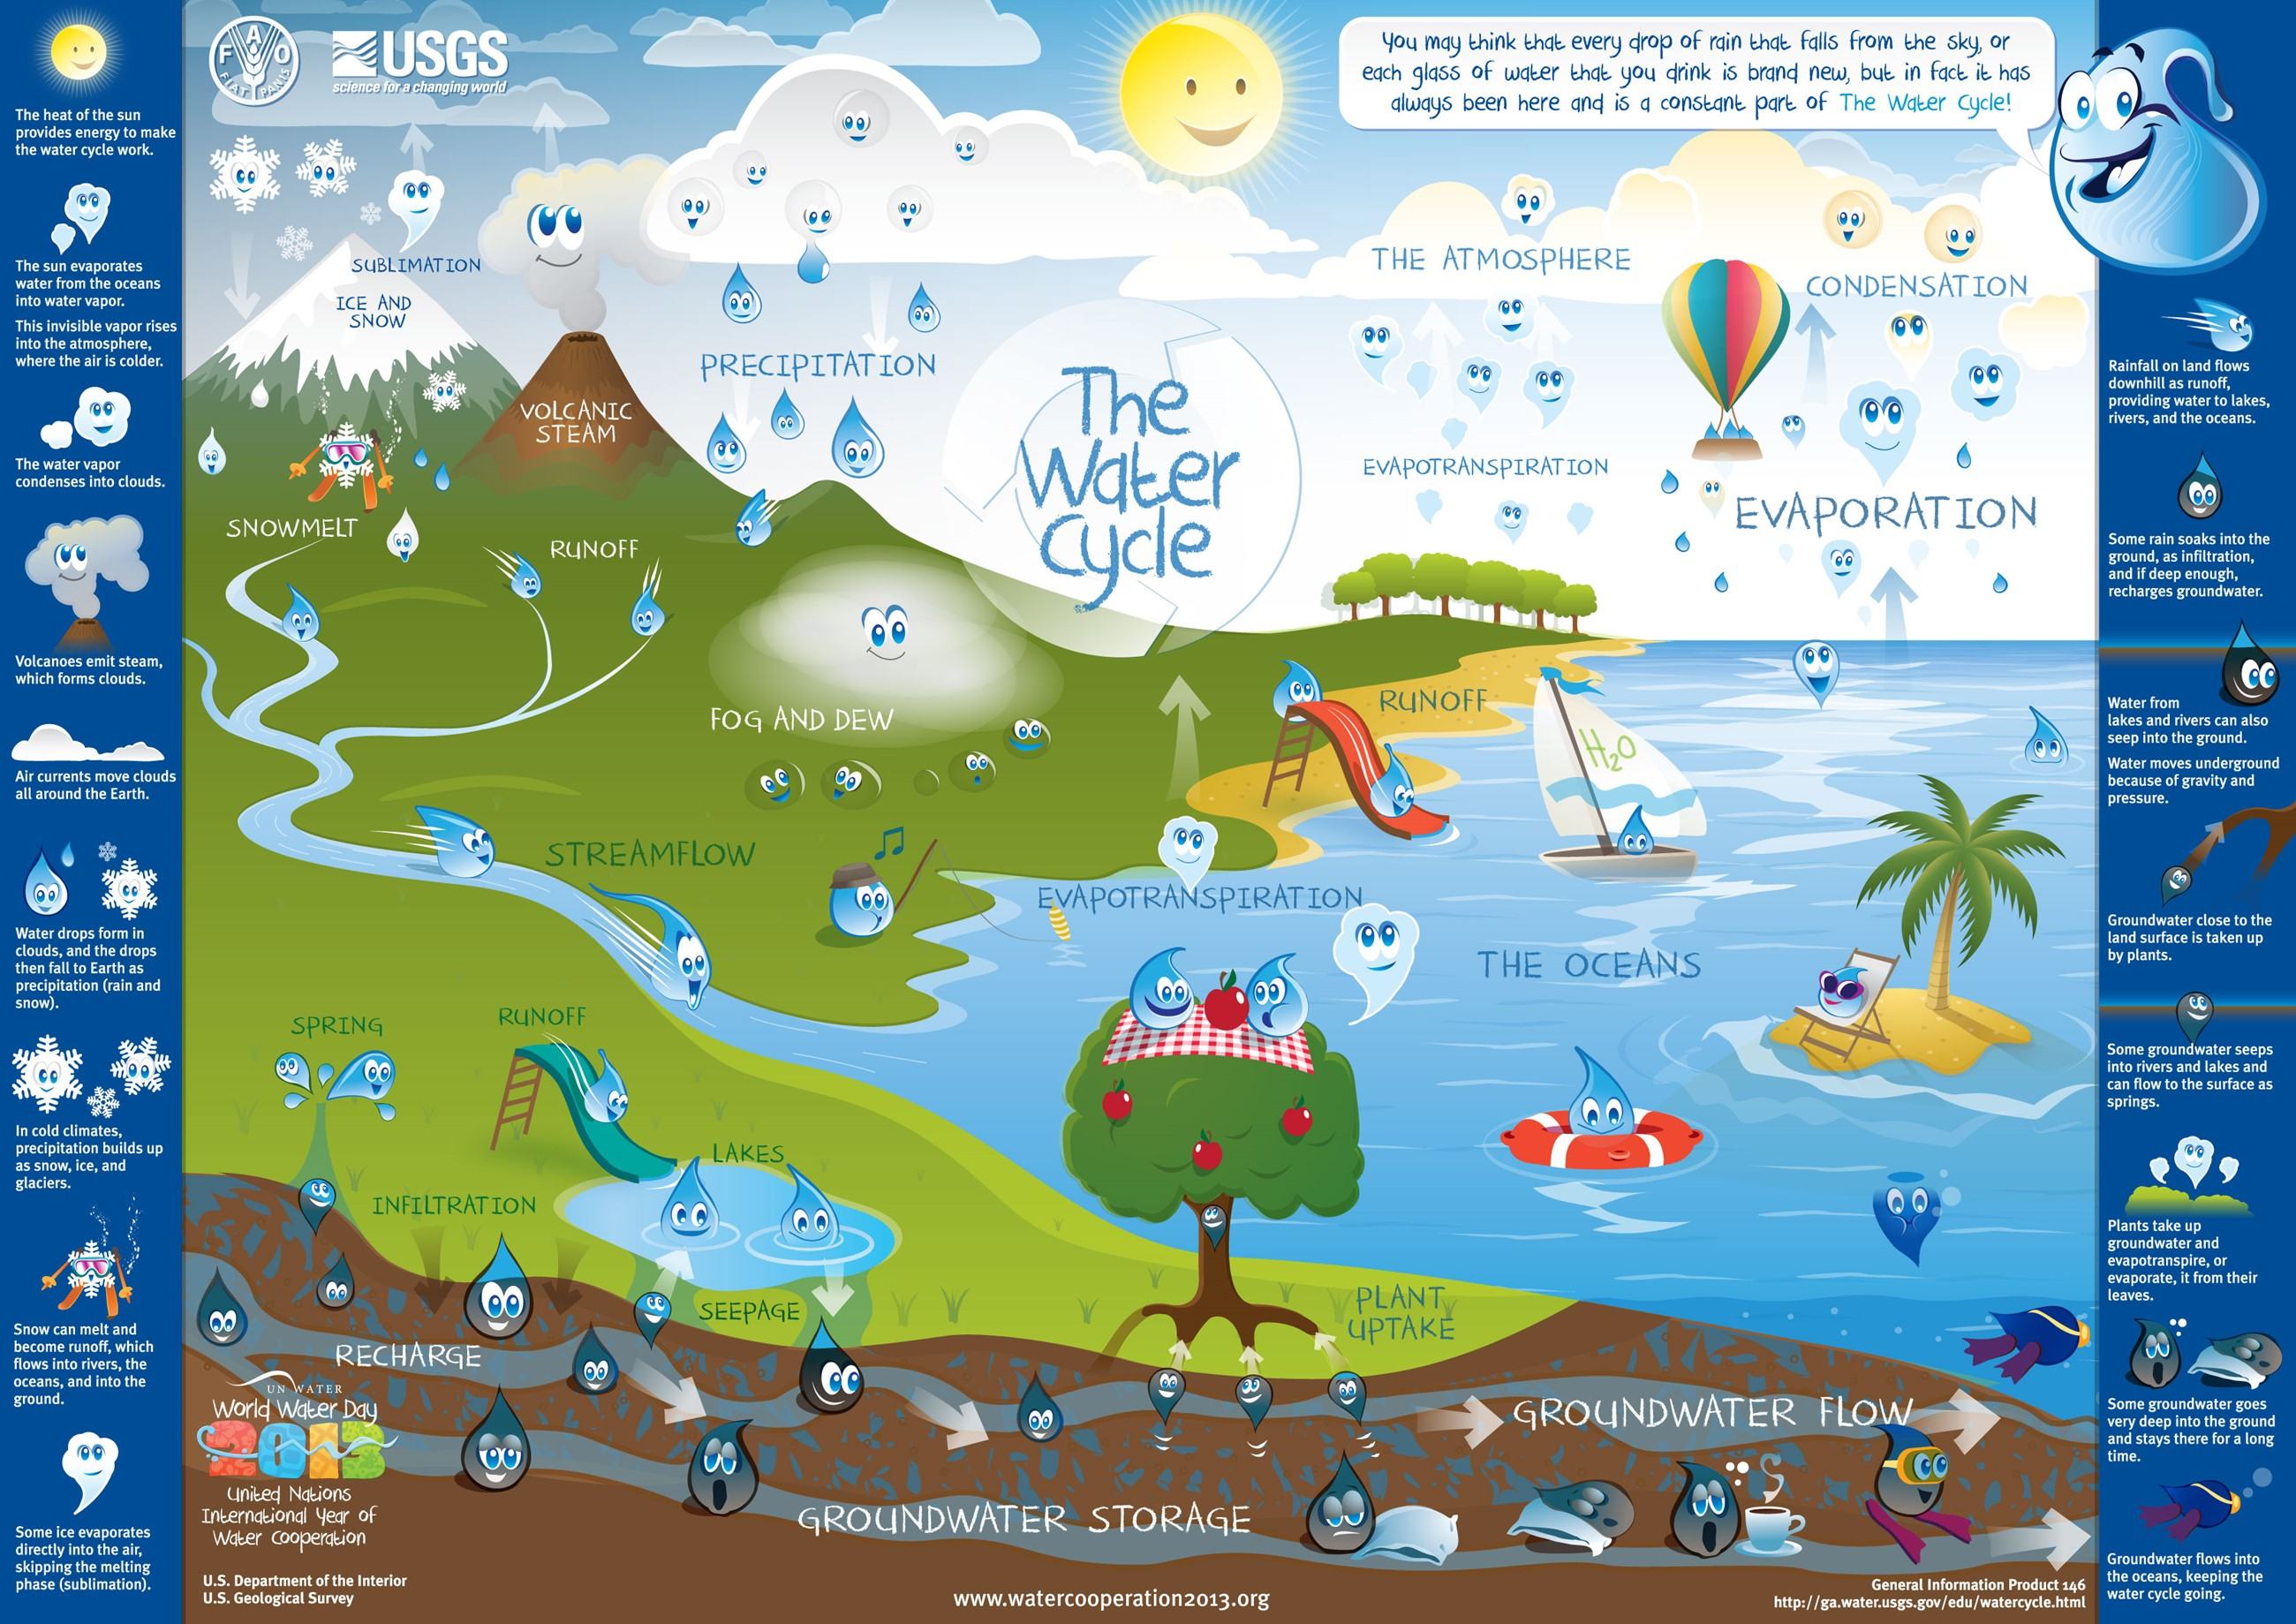 View The Water Cycle informational poster.